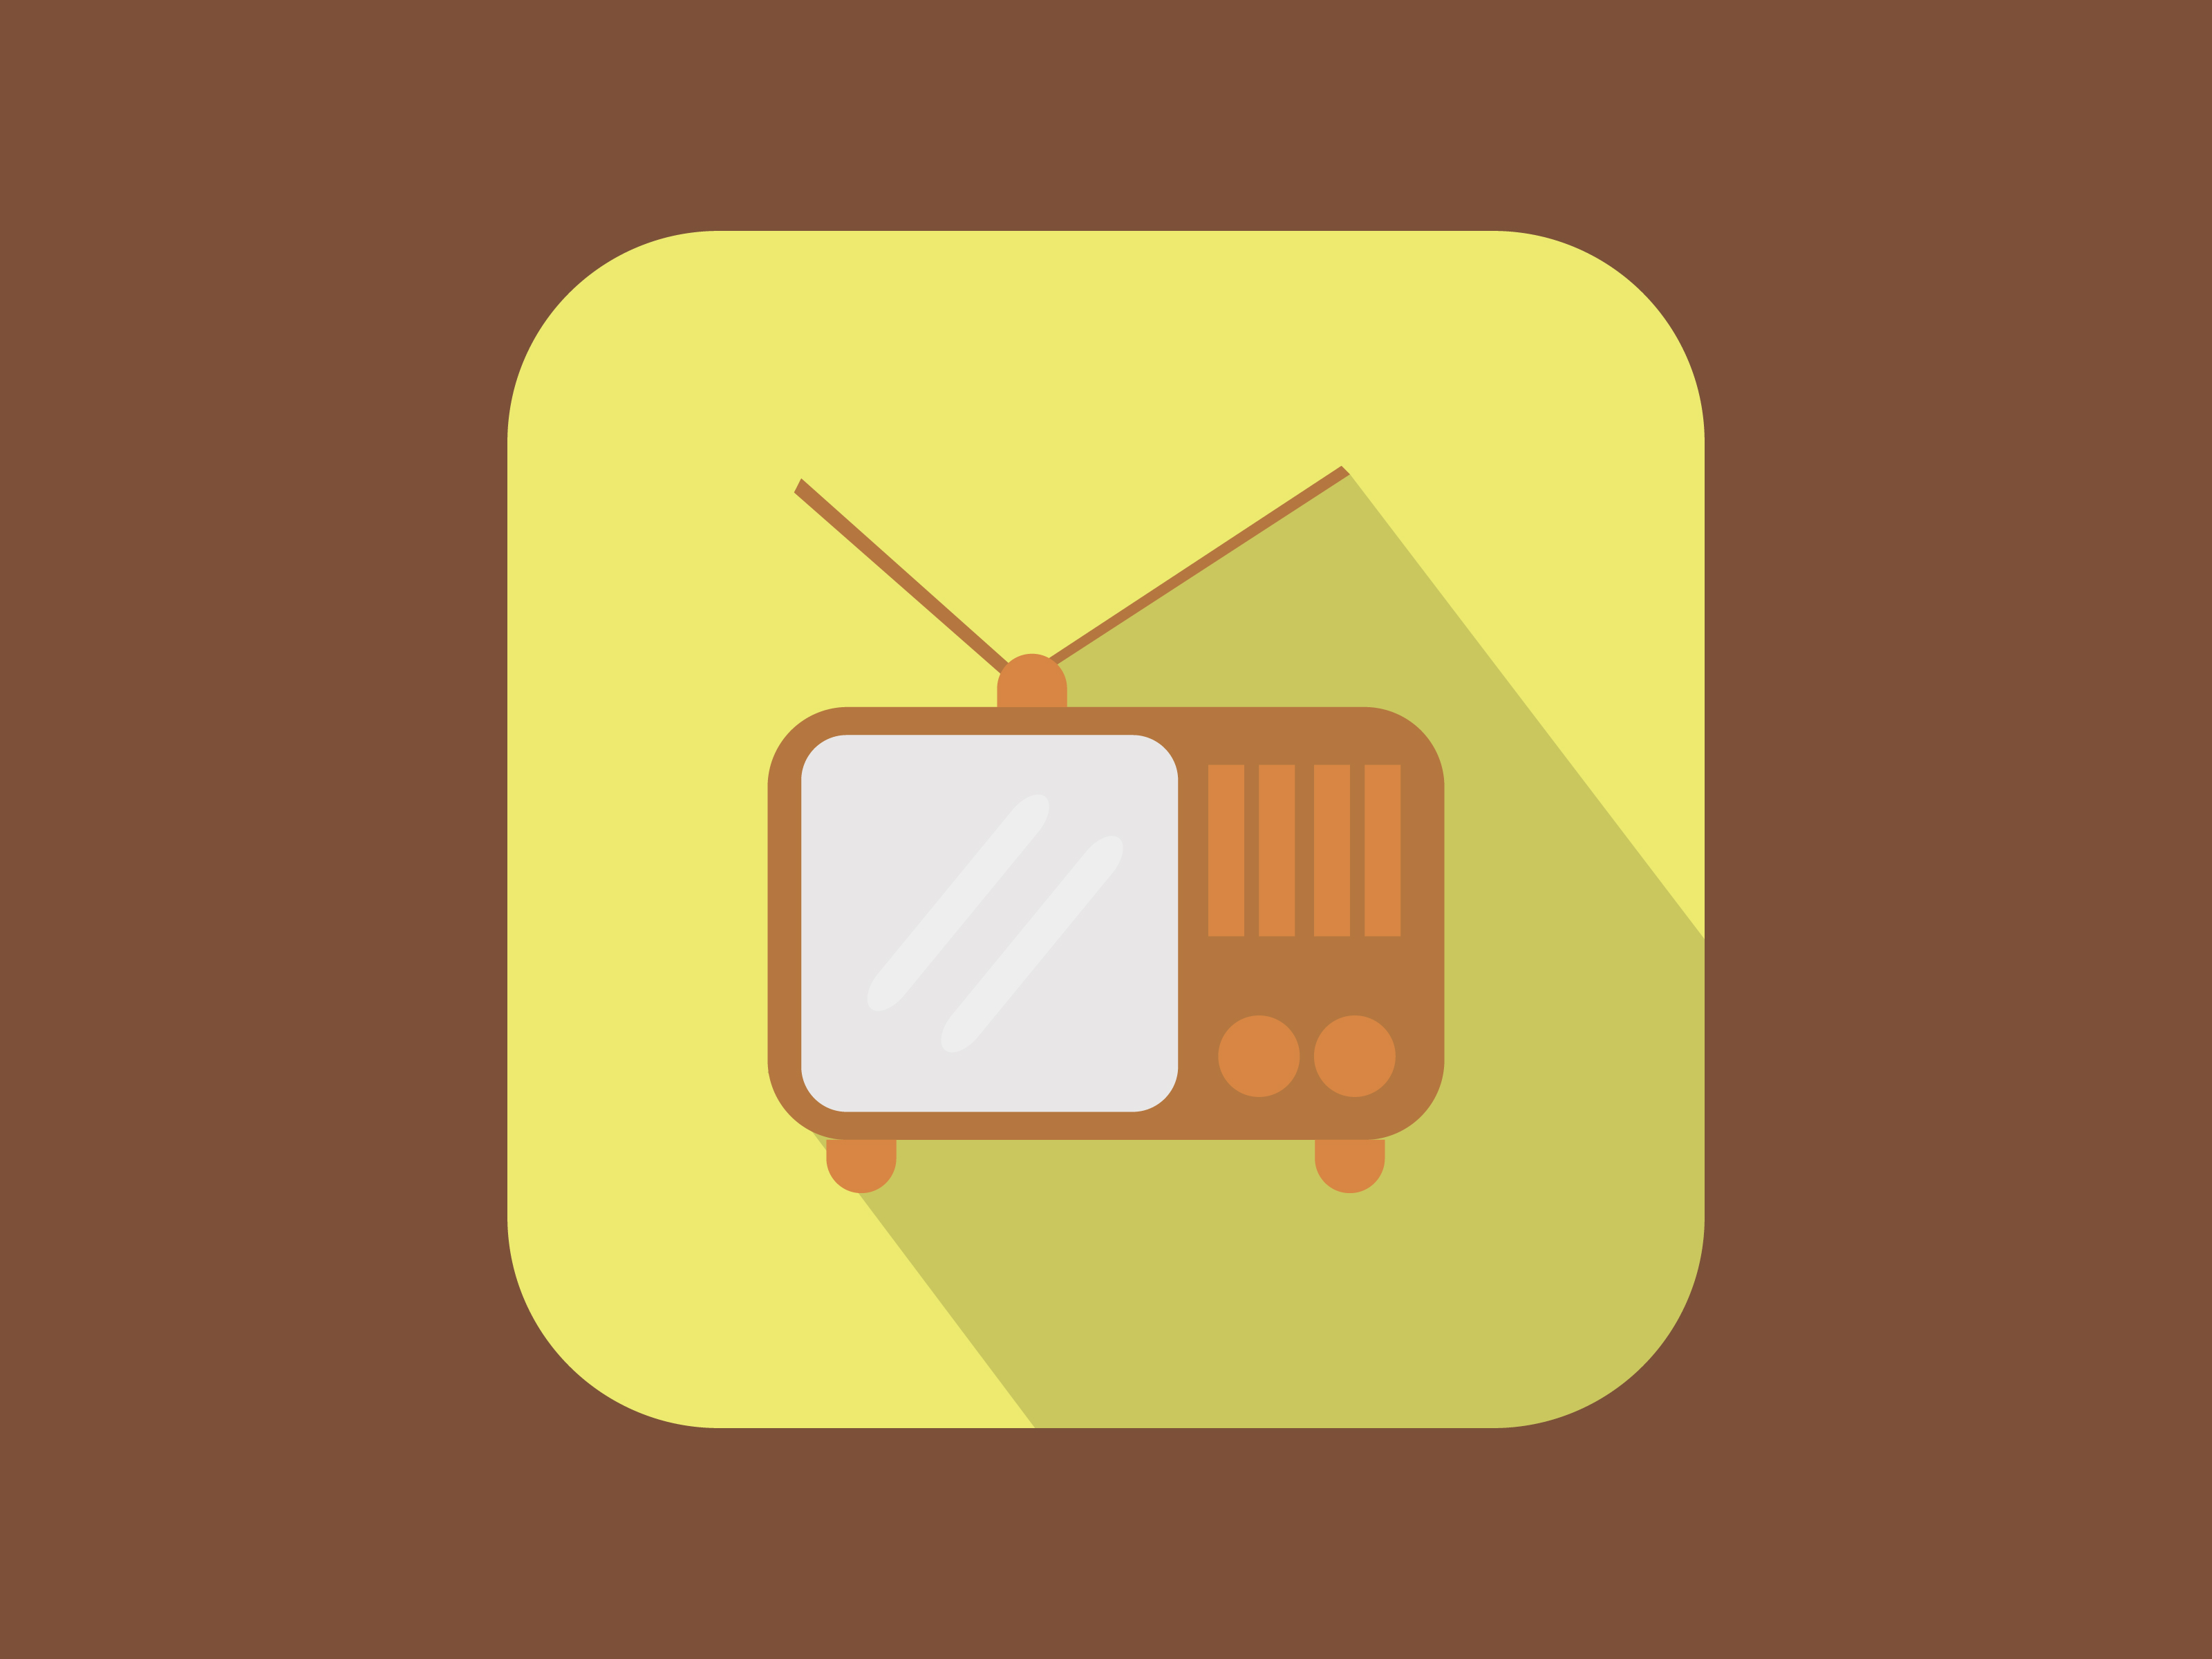 Download Free Classic Television Icon Modern Color Graphic By Meandmydate for Cricut Explore, Silhouette and other cutting machines.